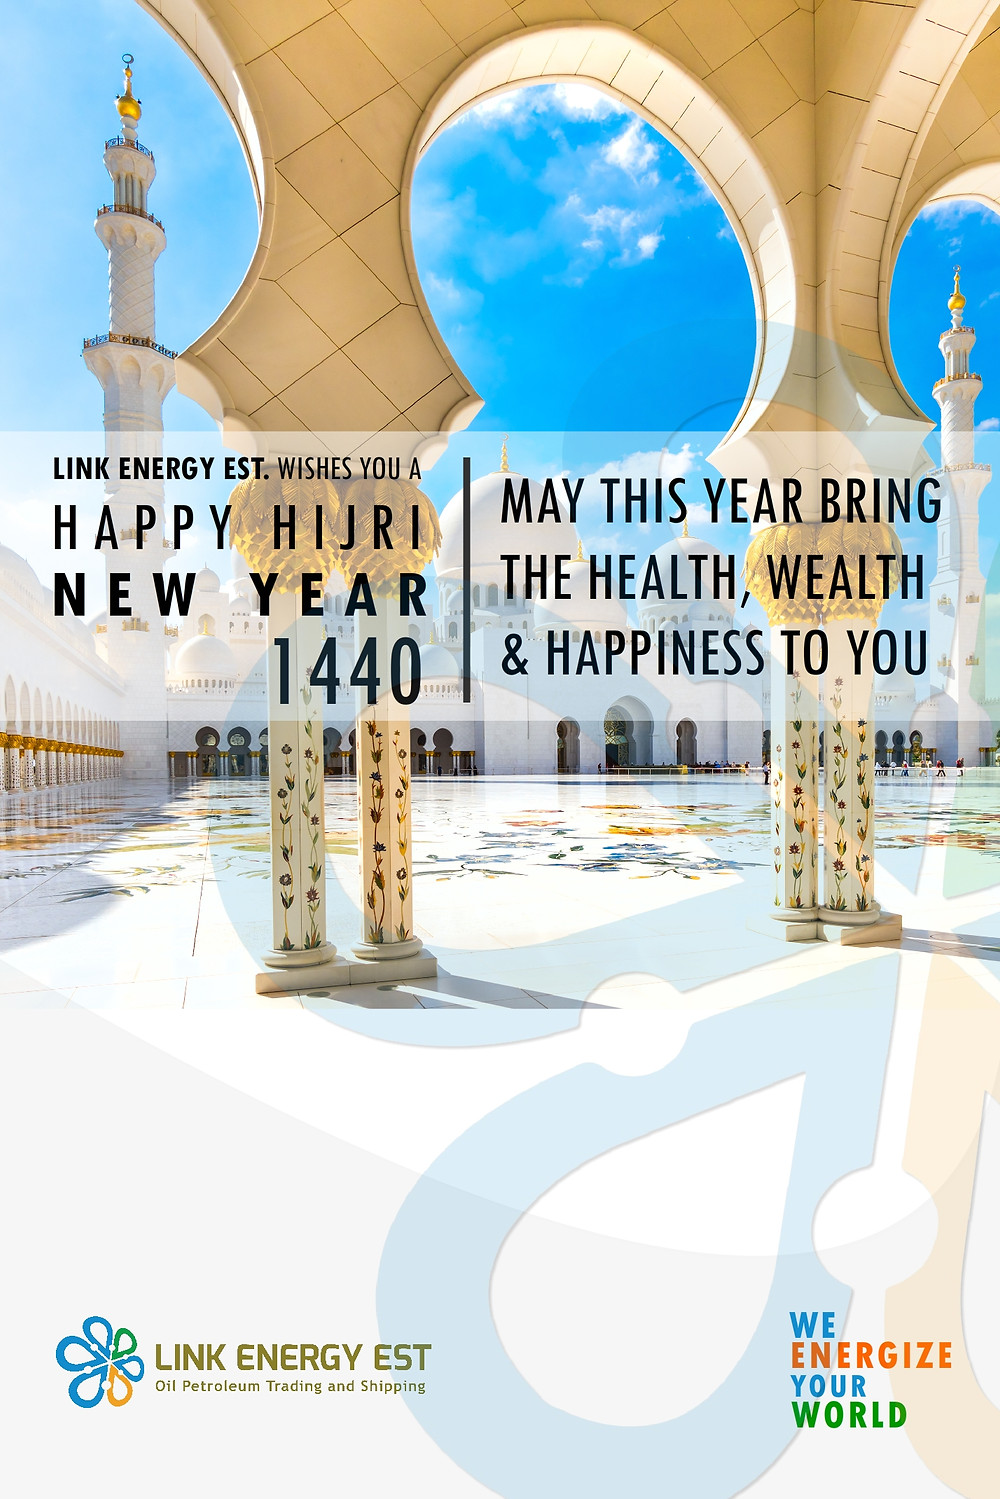 Link Energy Est. wishes you a Happy Hijri New Year